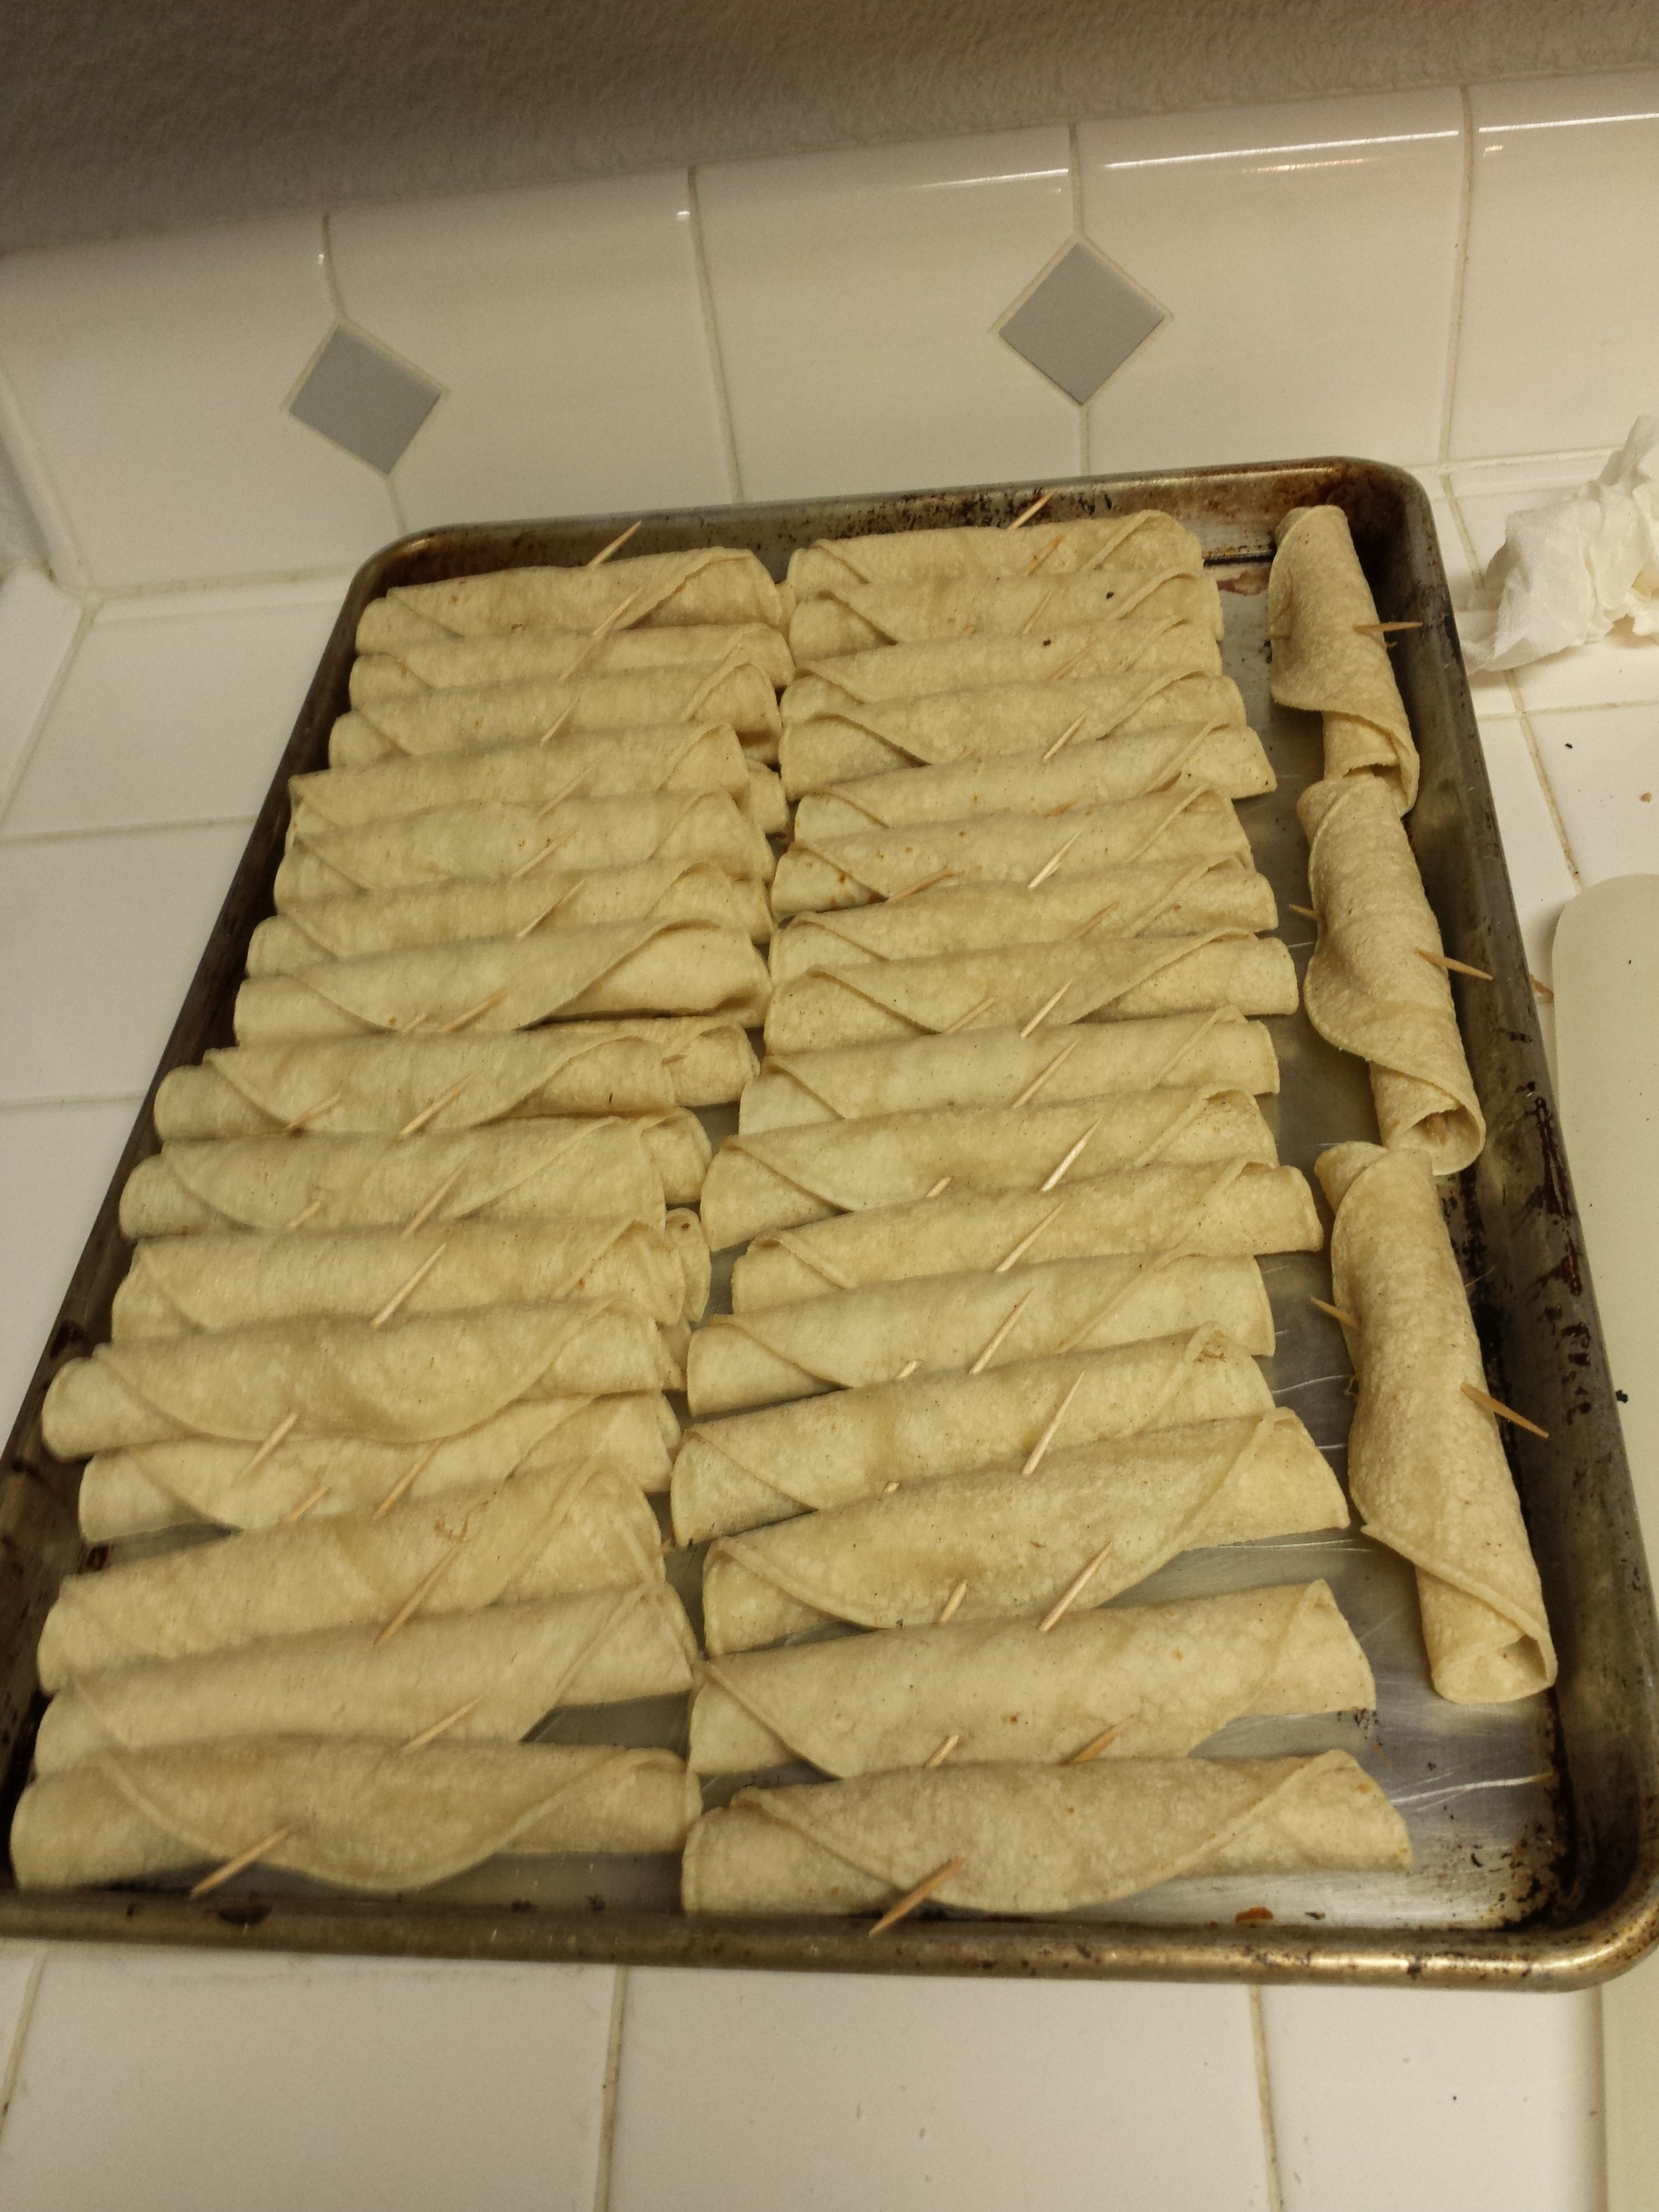 Taquitos ready for deep frying